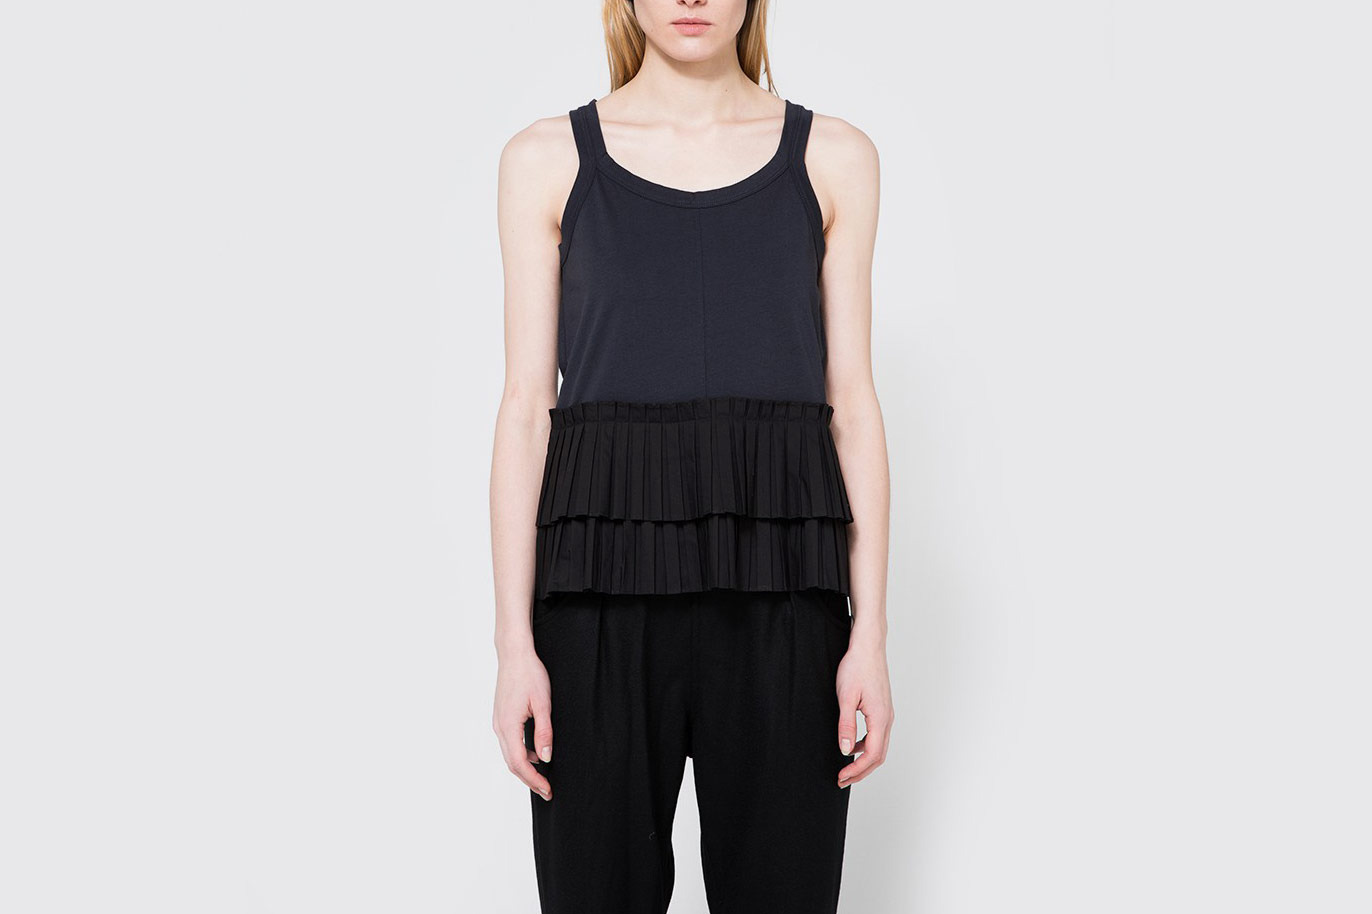 Marni Crew Neck T-Shirt in Blublack